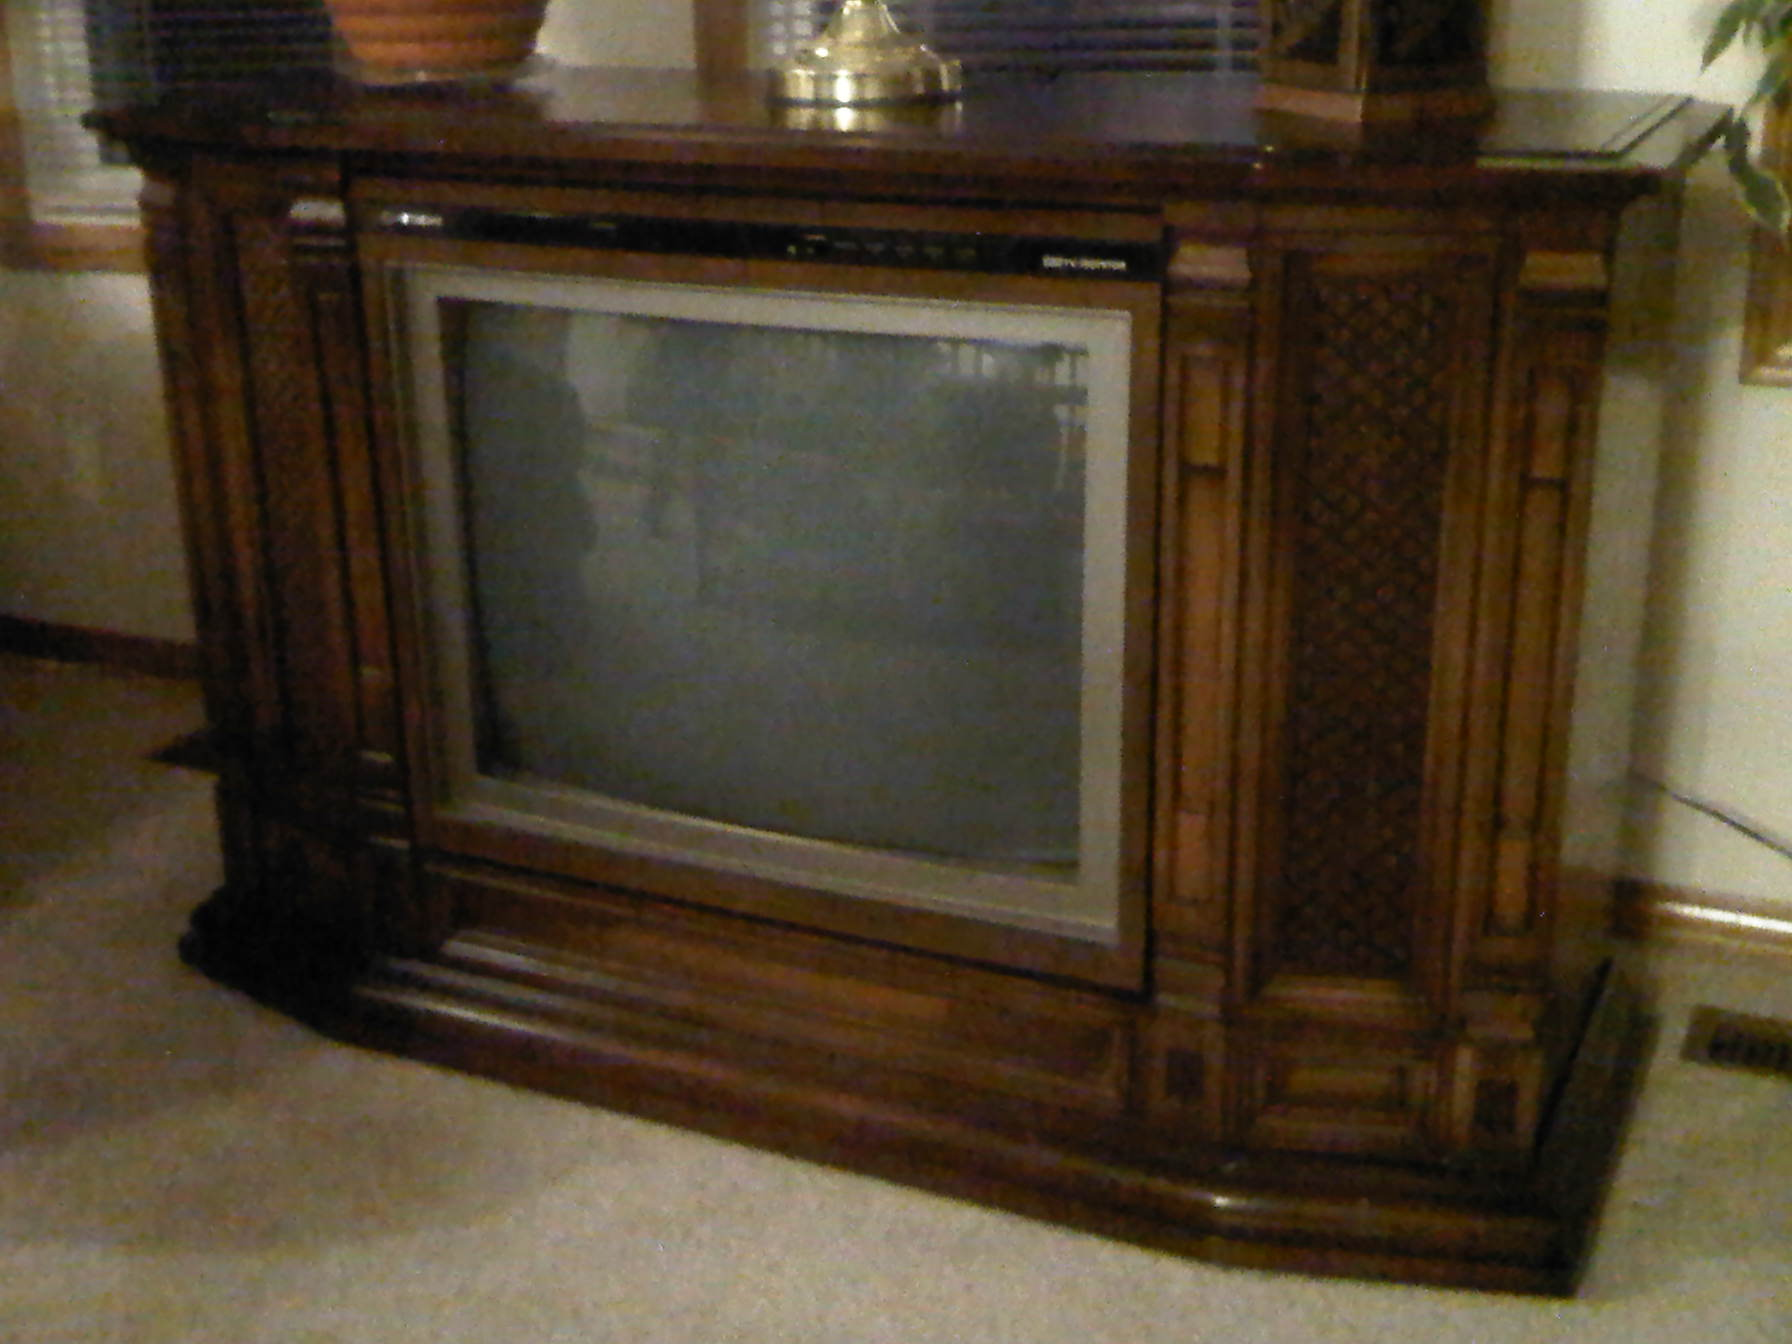 My hitachi wood cabinet television set was bought new in